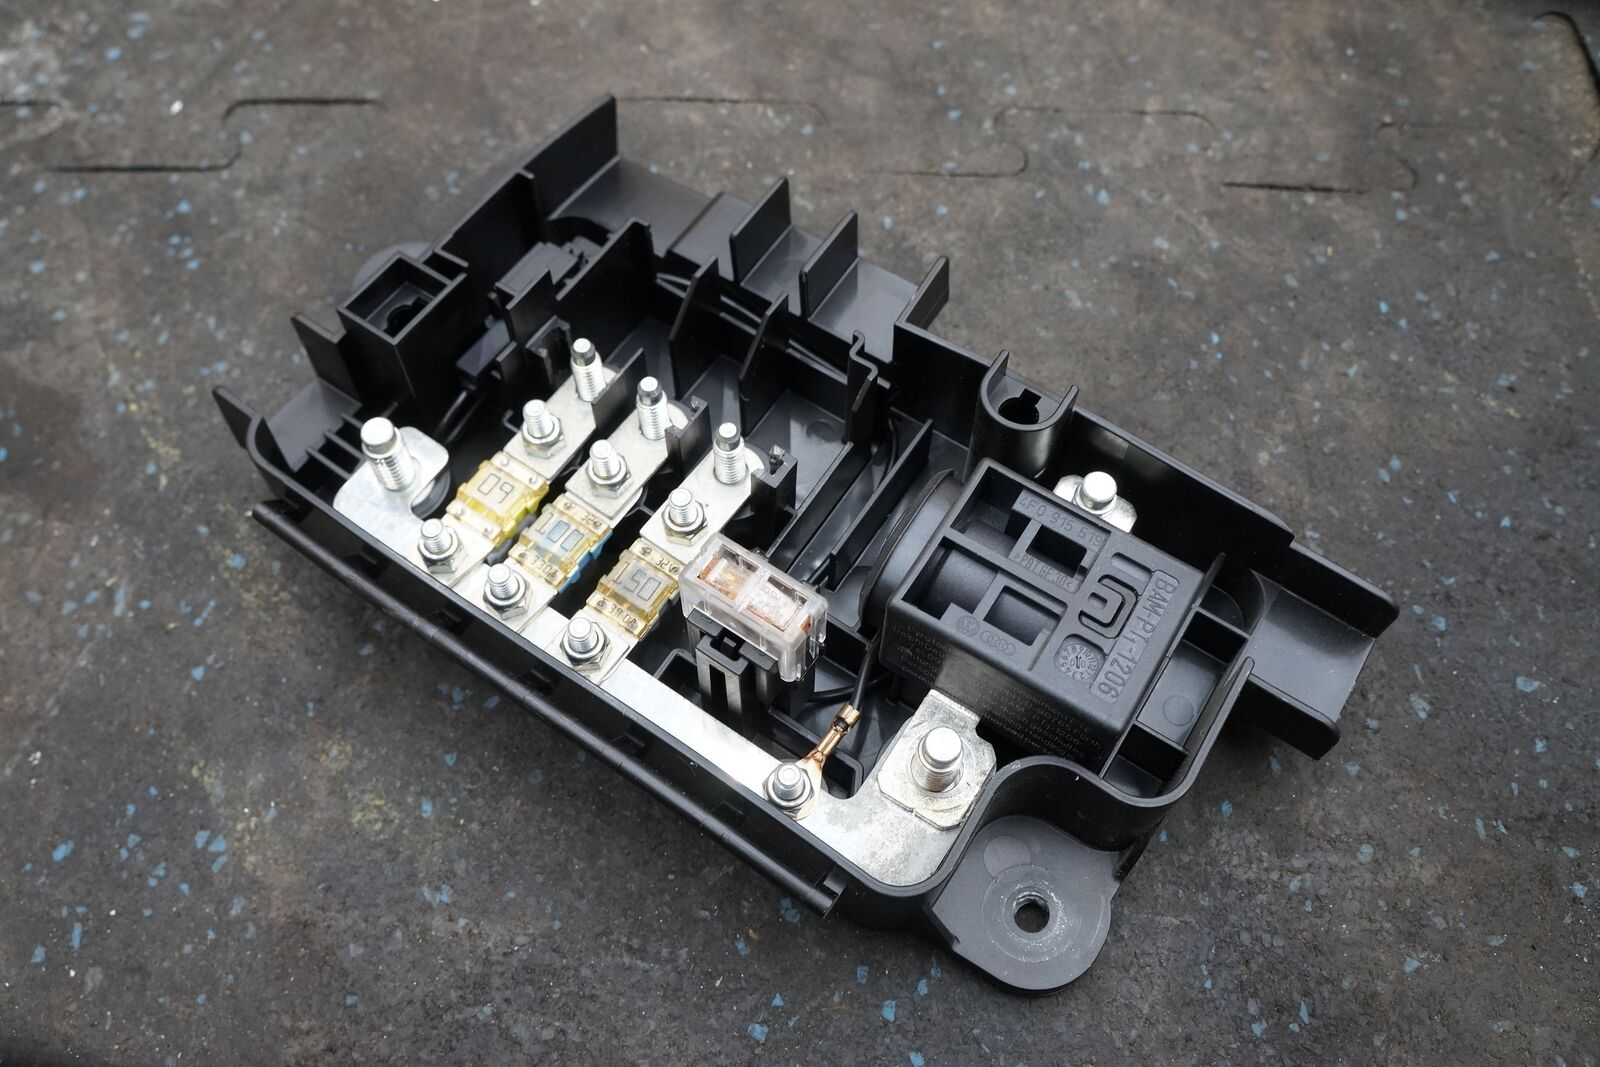 Audi R8 Fuse Box Wiring Diagram Sample A8 4e Battery Block Cut Off Switch 420937548a 4f0915519 Location